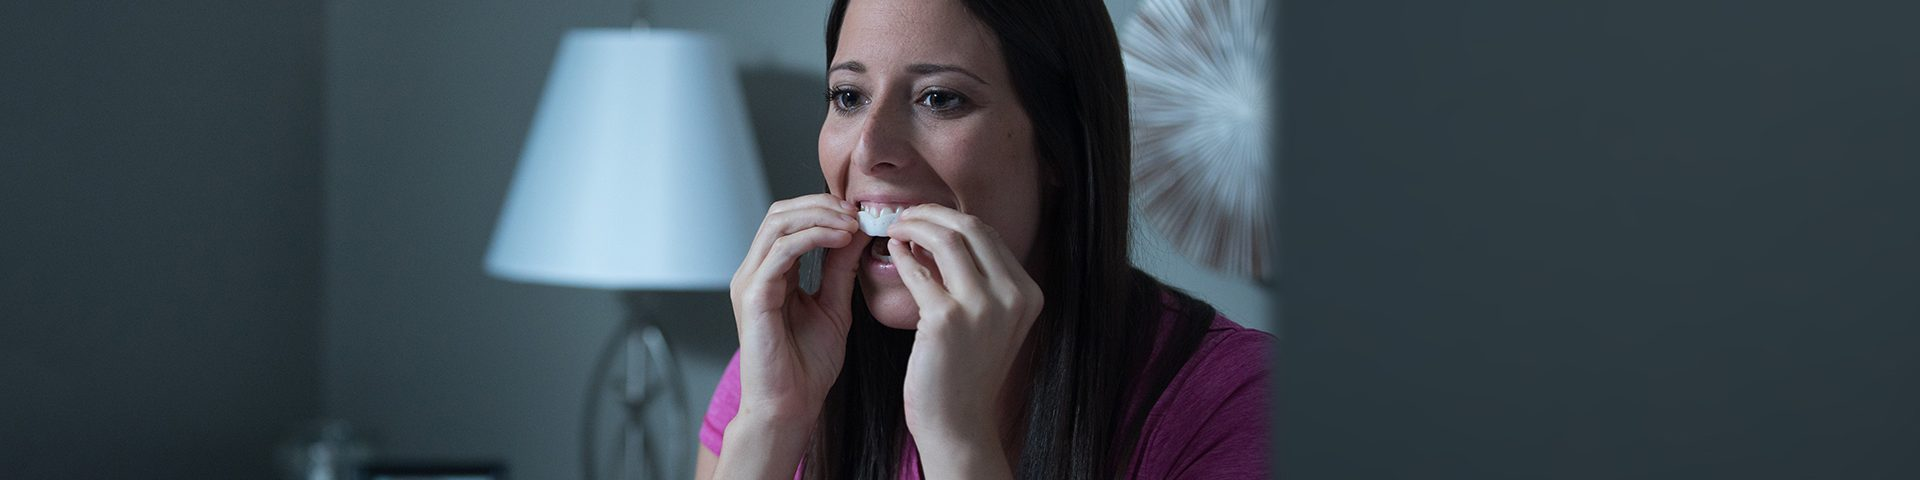 Night Guards Can Help You If You Suffer from Bruxism